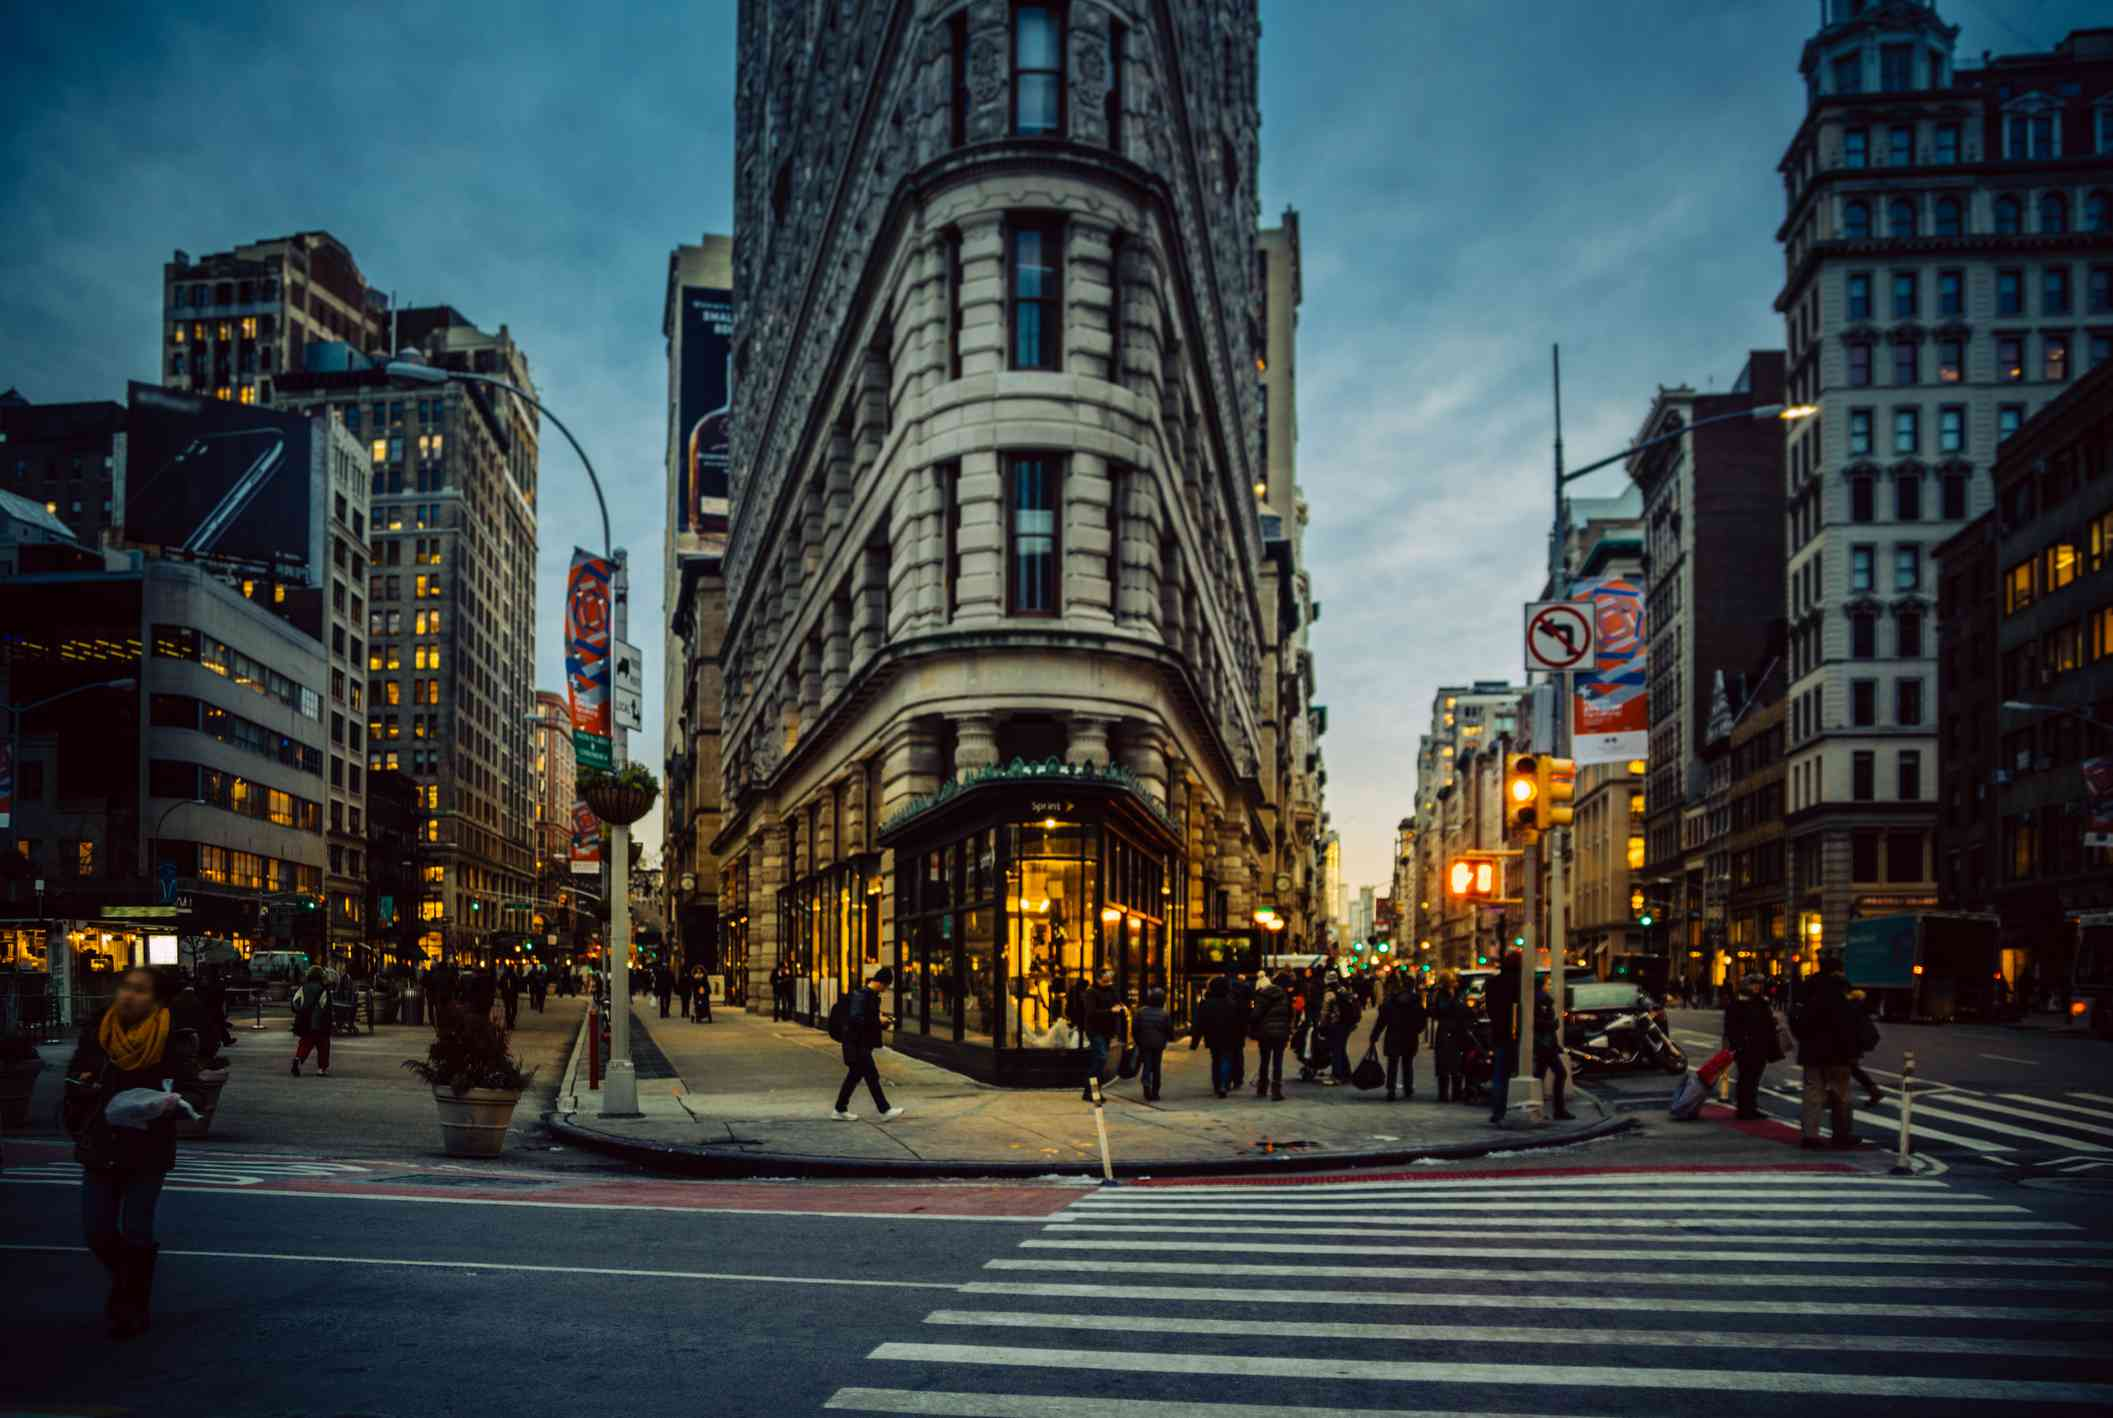 The Flatiron district in the evening